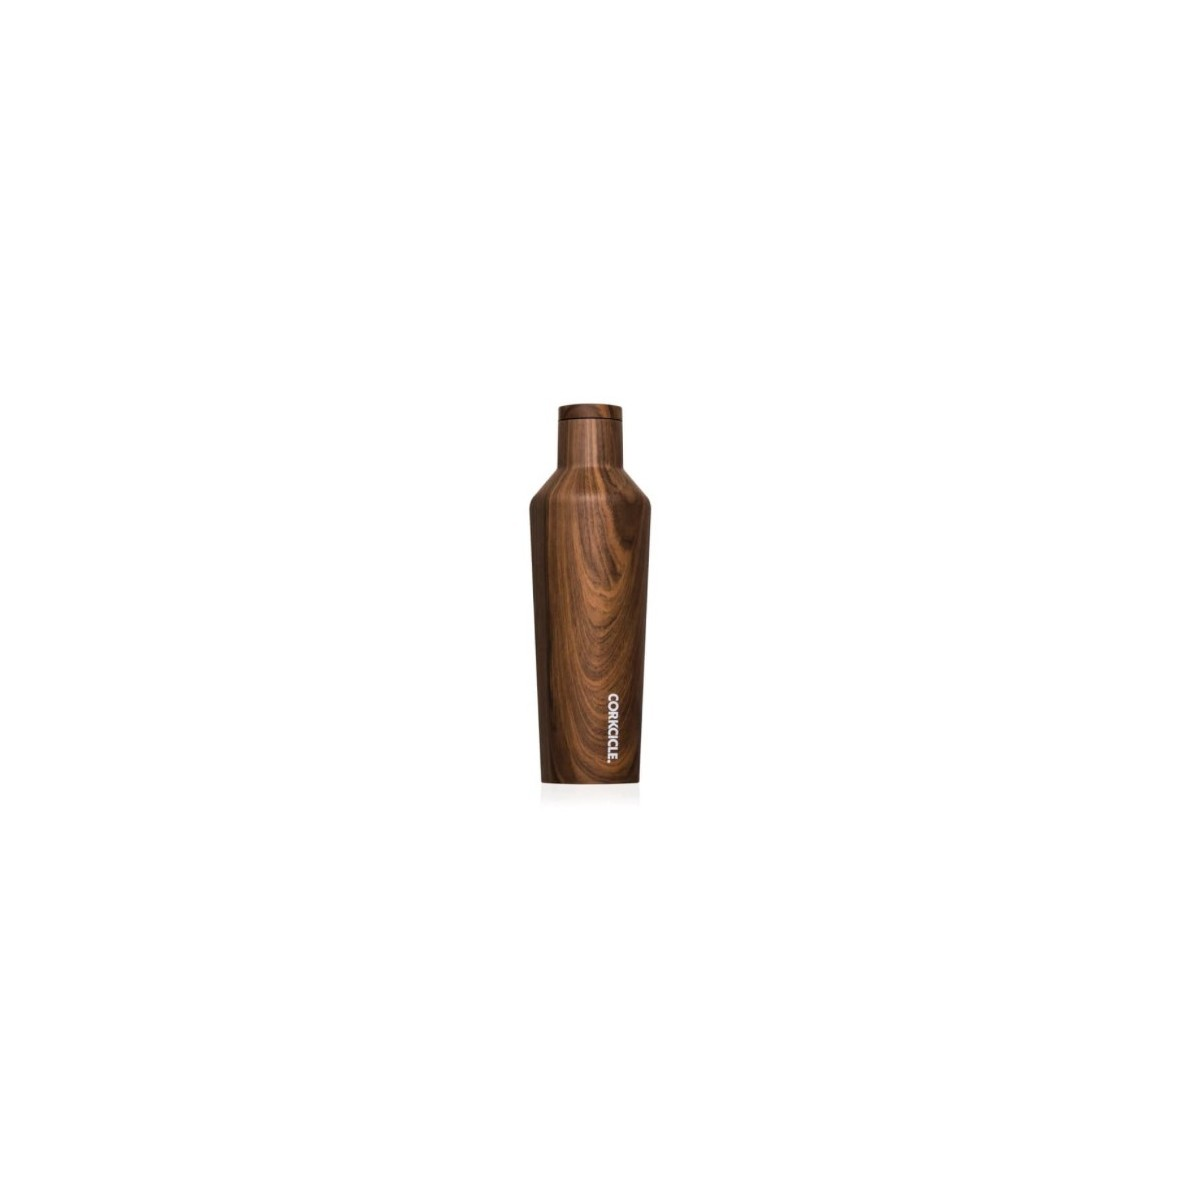 Borraccia termica - Canteen 16oz - 475ml walnut